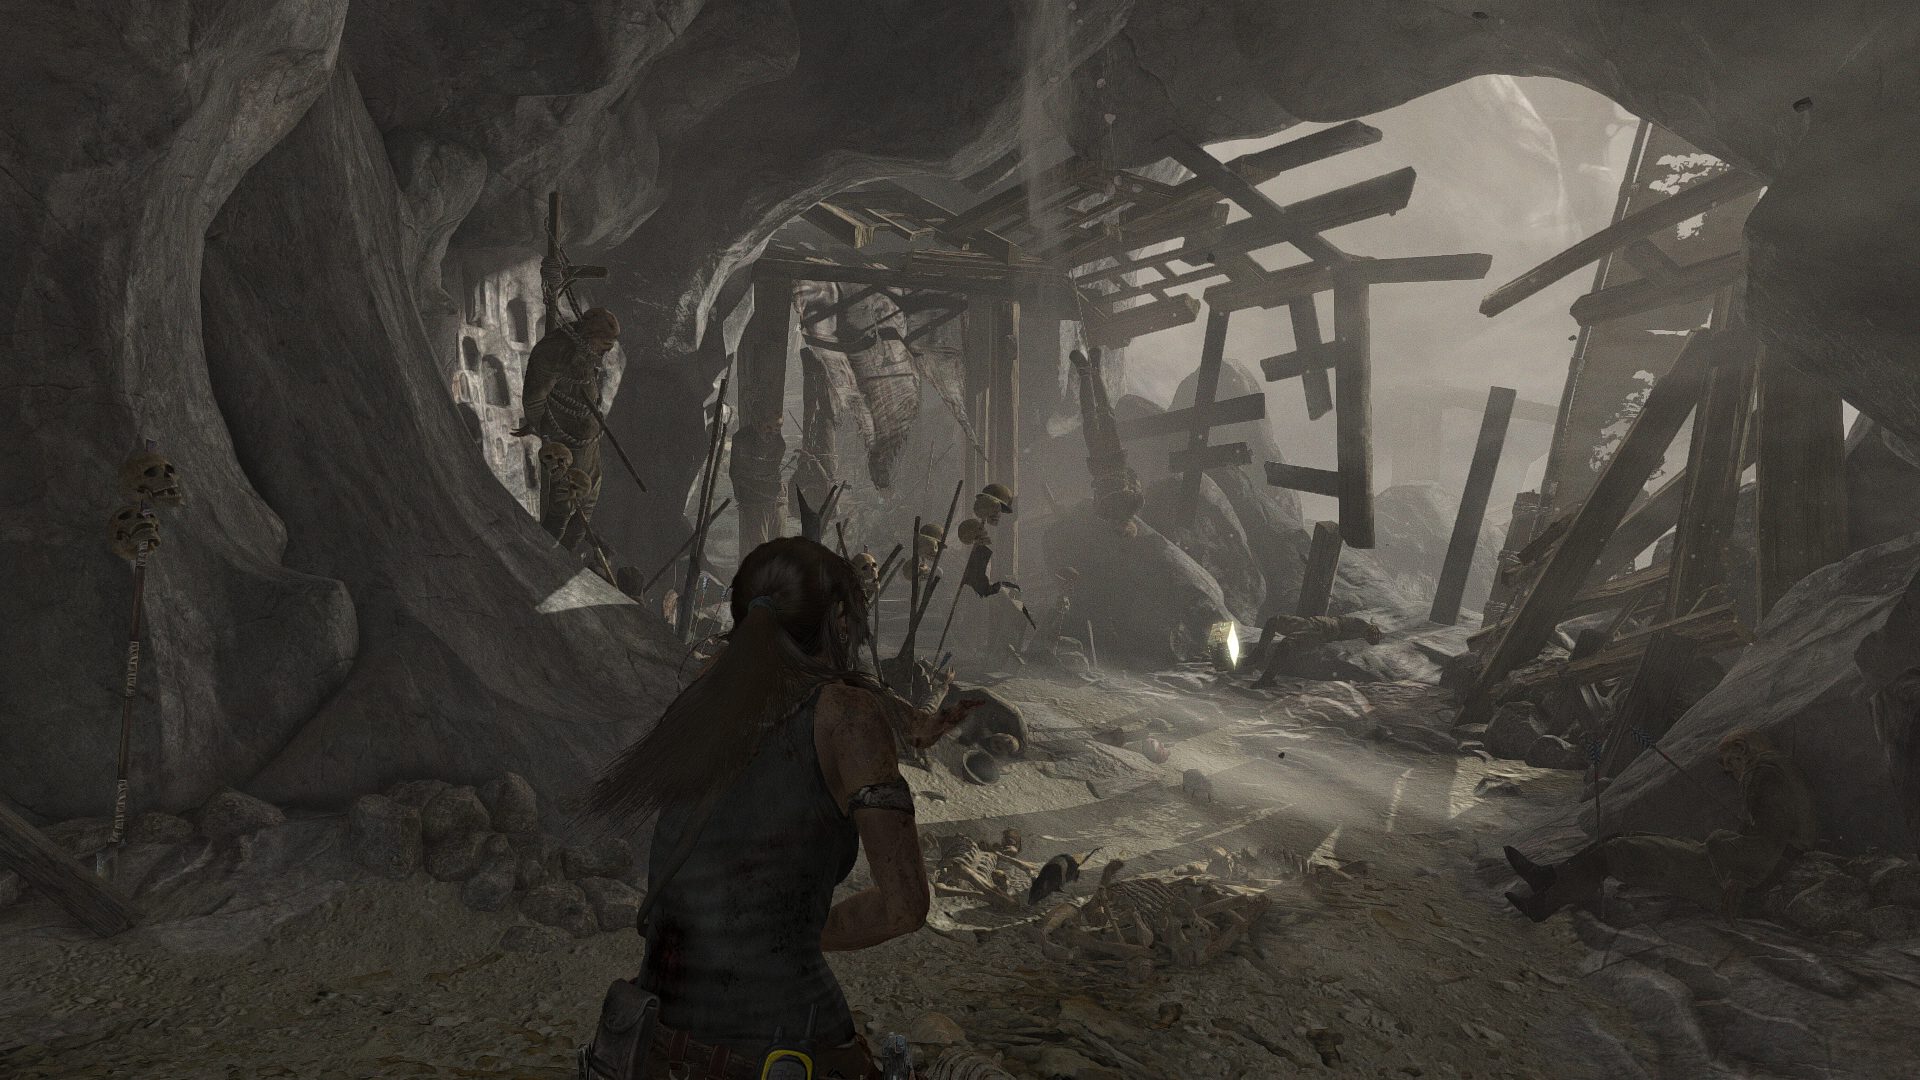 Tomb raider 2004 viewing gallery